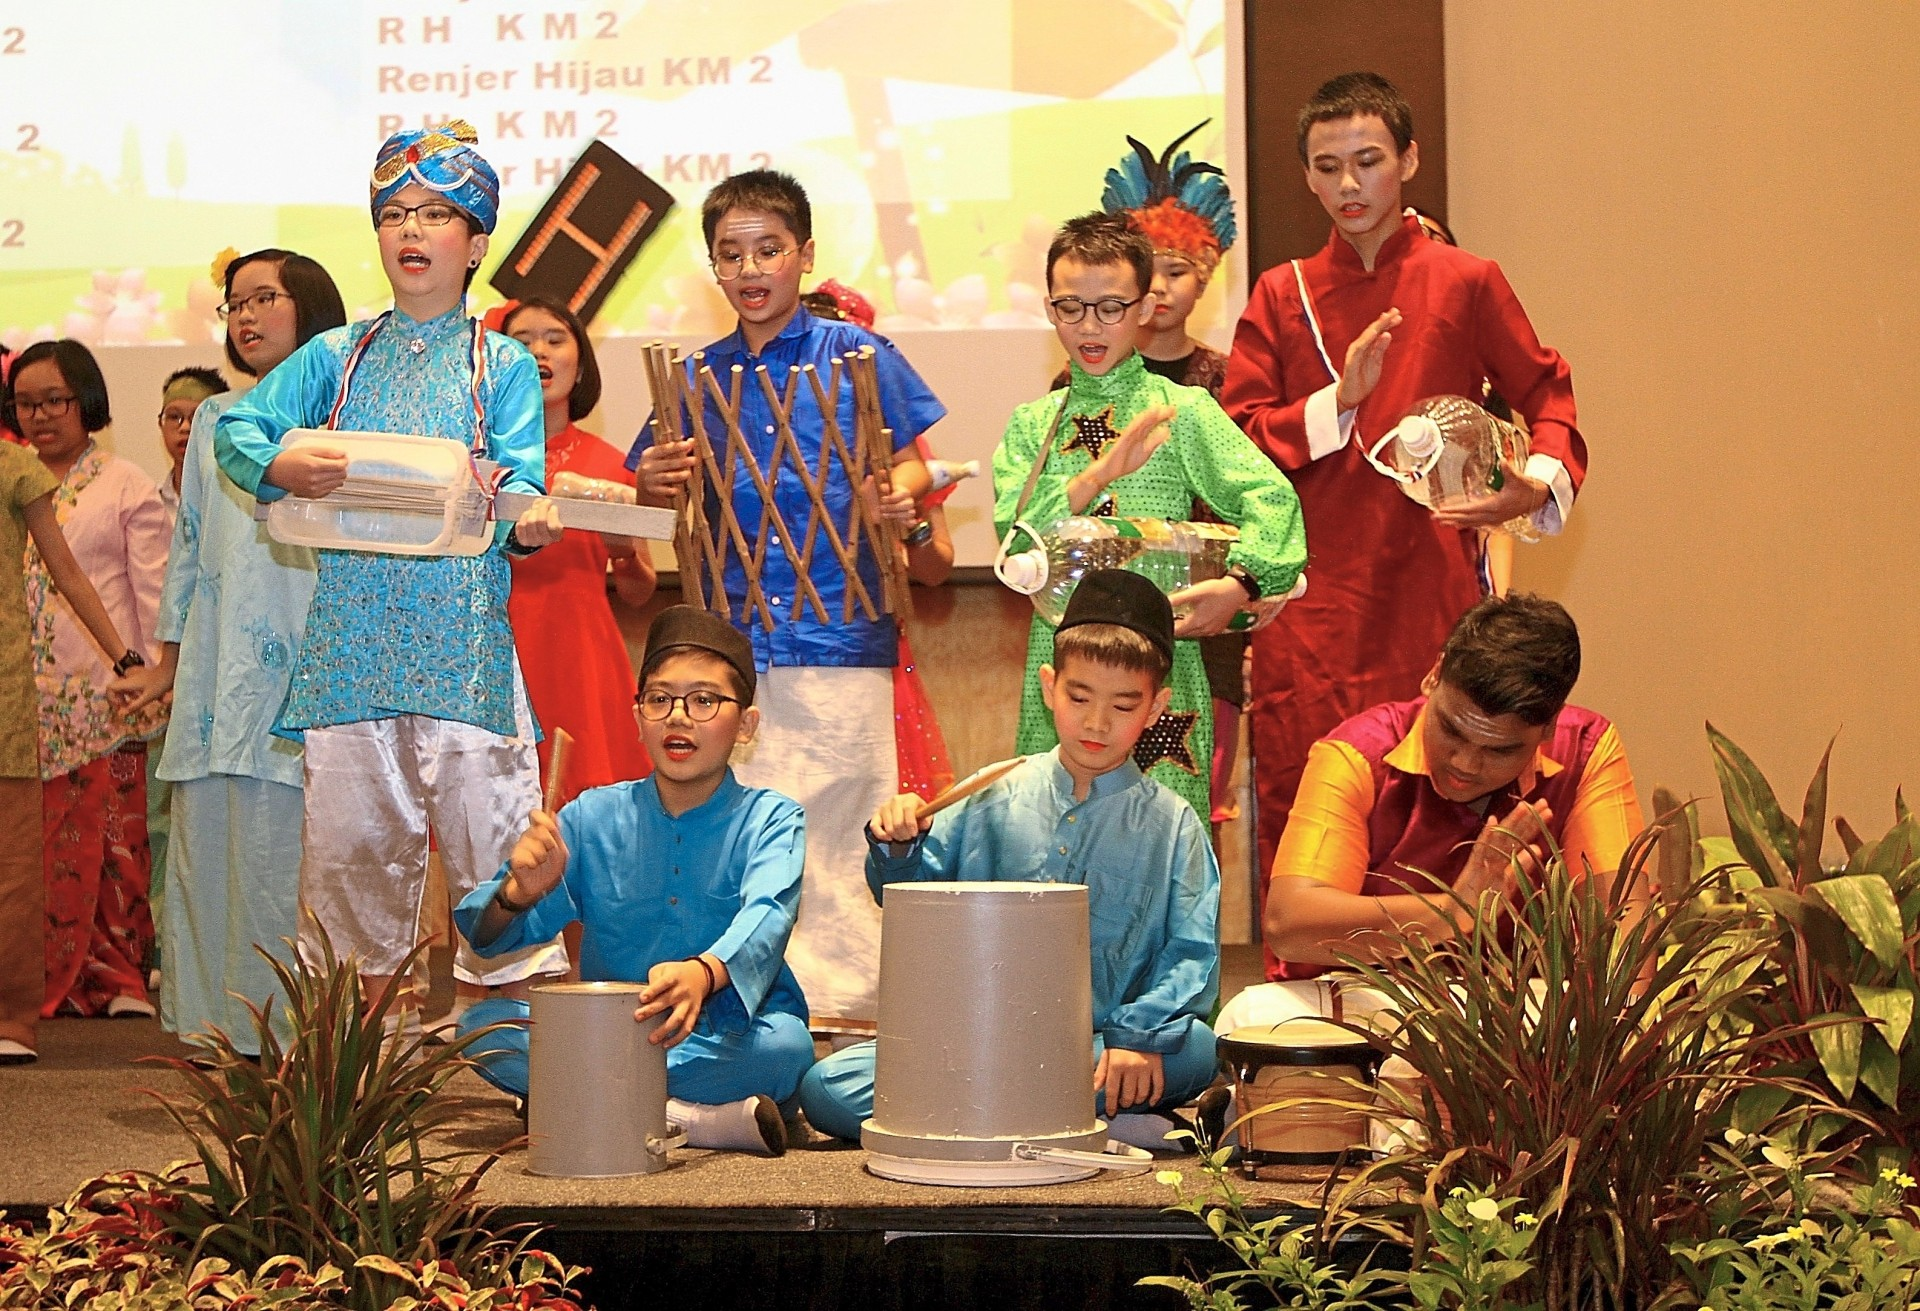 'Green Warriors' of SJK(C) Kong Min 2 performing a musical dance on stage using recyclable items during the Penang Green School Awards 2019 ceremony at Jen Hotel in George Town, Penang.